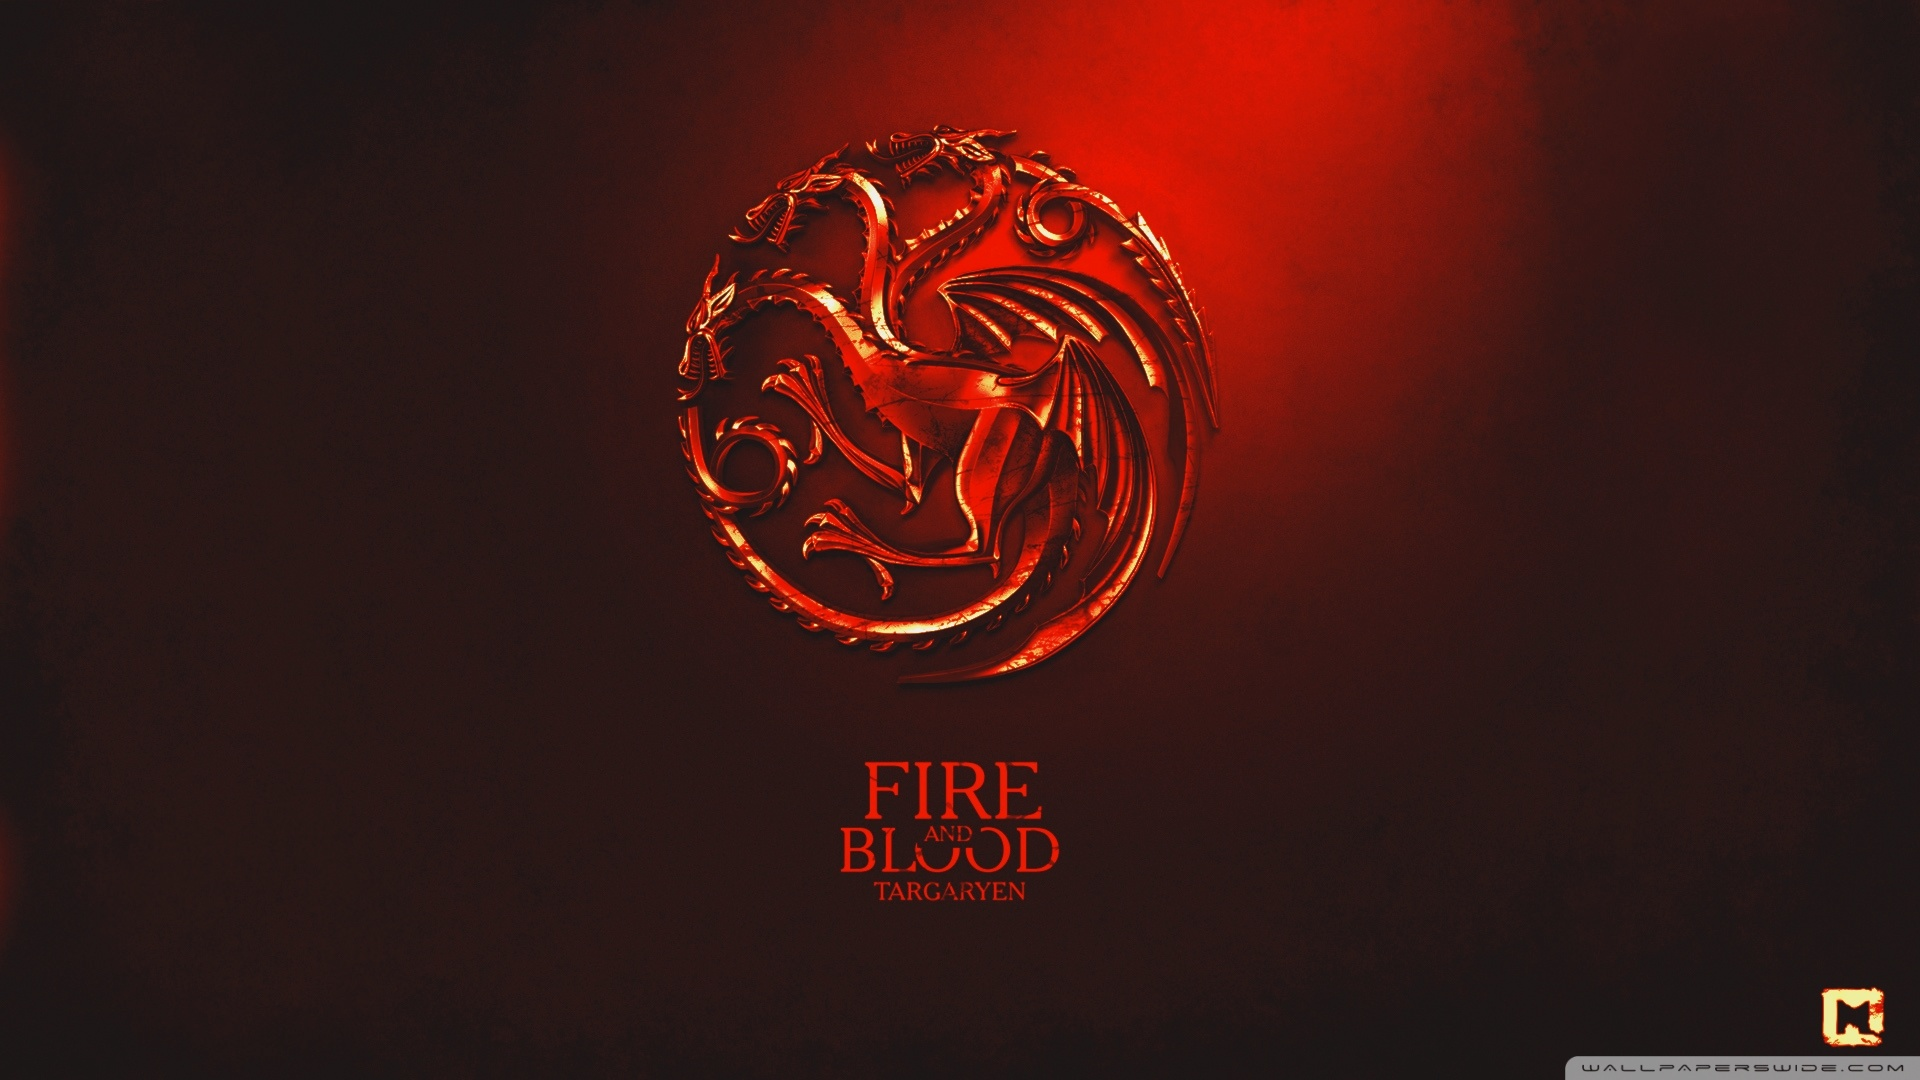 House Targaryen Wallpaper - WallpaperSafari